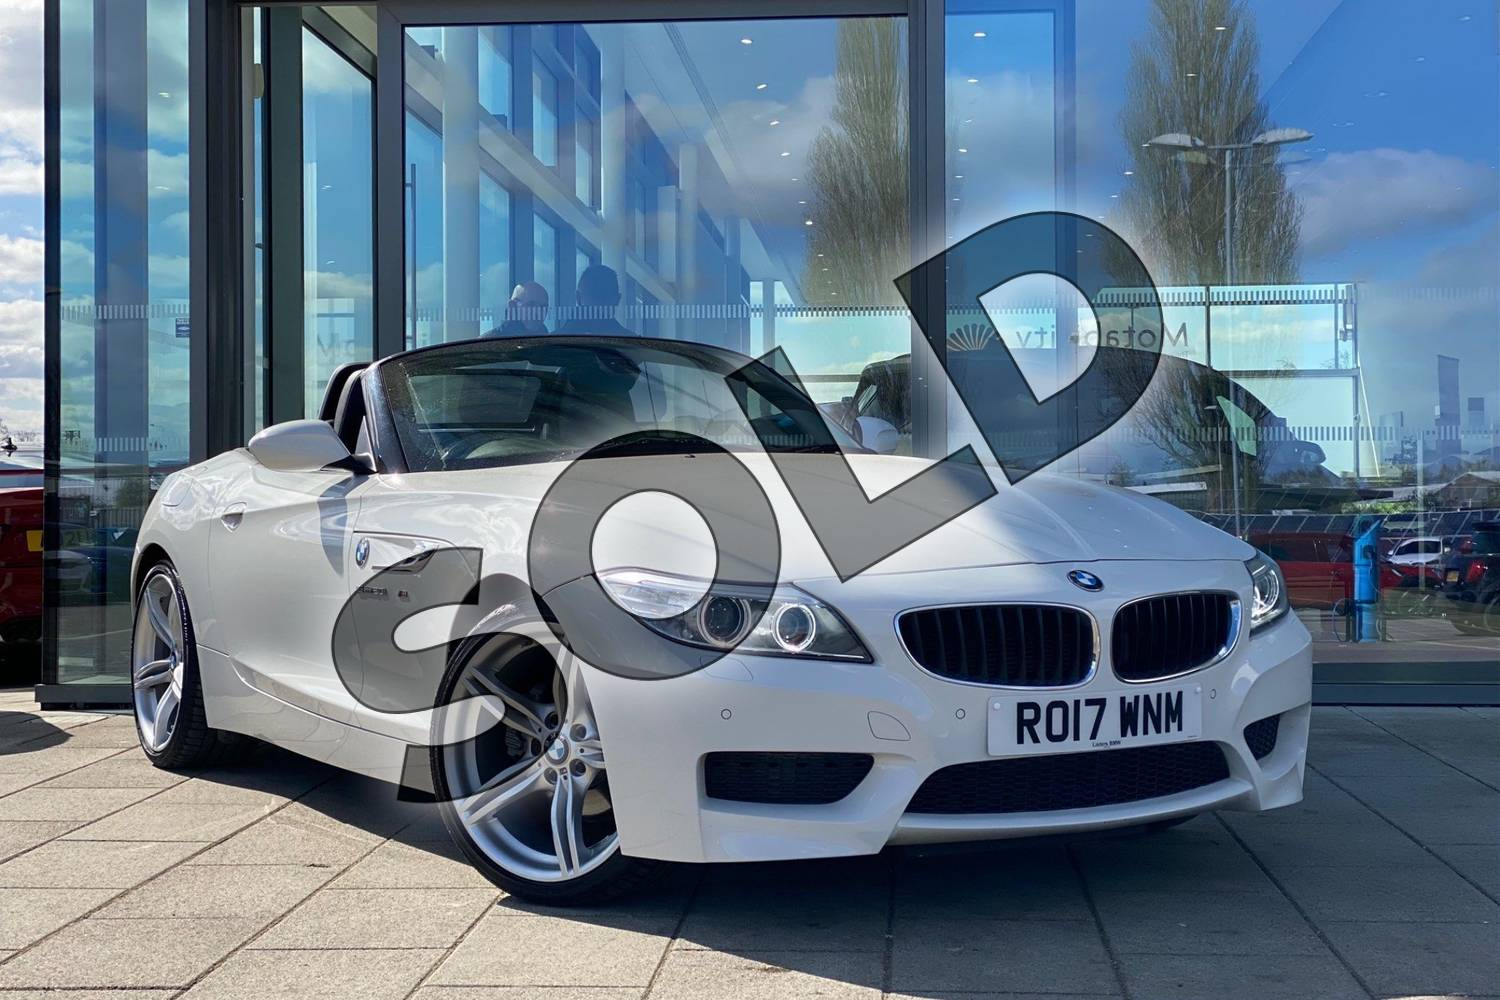 2017 BMW Z4 Series Z4 sDrive20i M Sport Roadster in Alpine White at Listers King's Lynn (BMW)